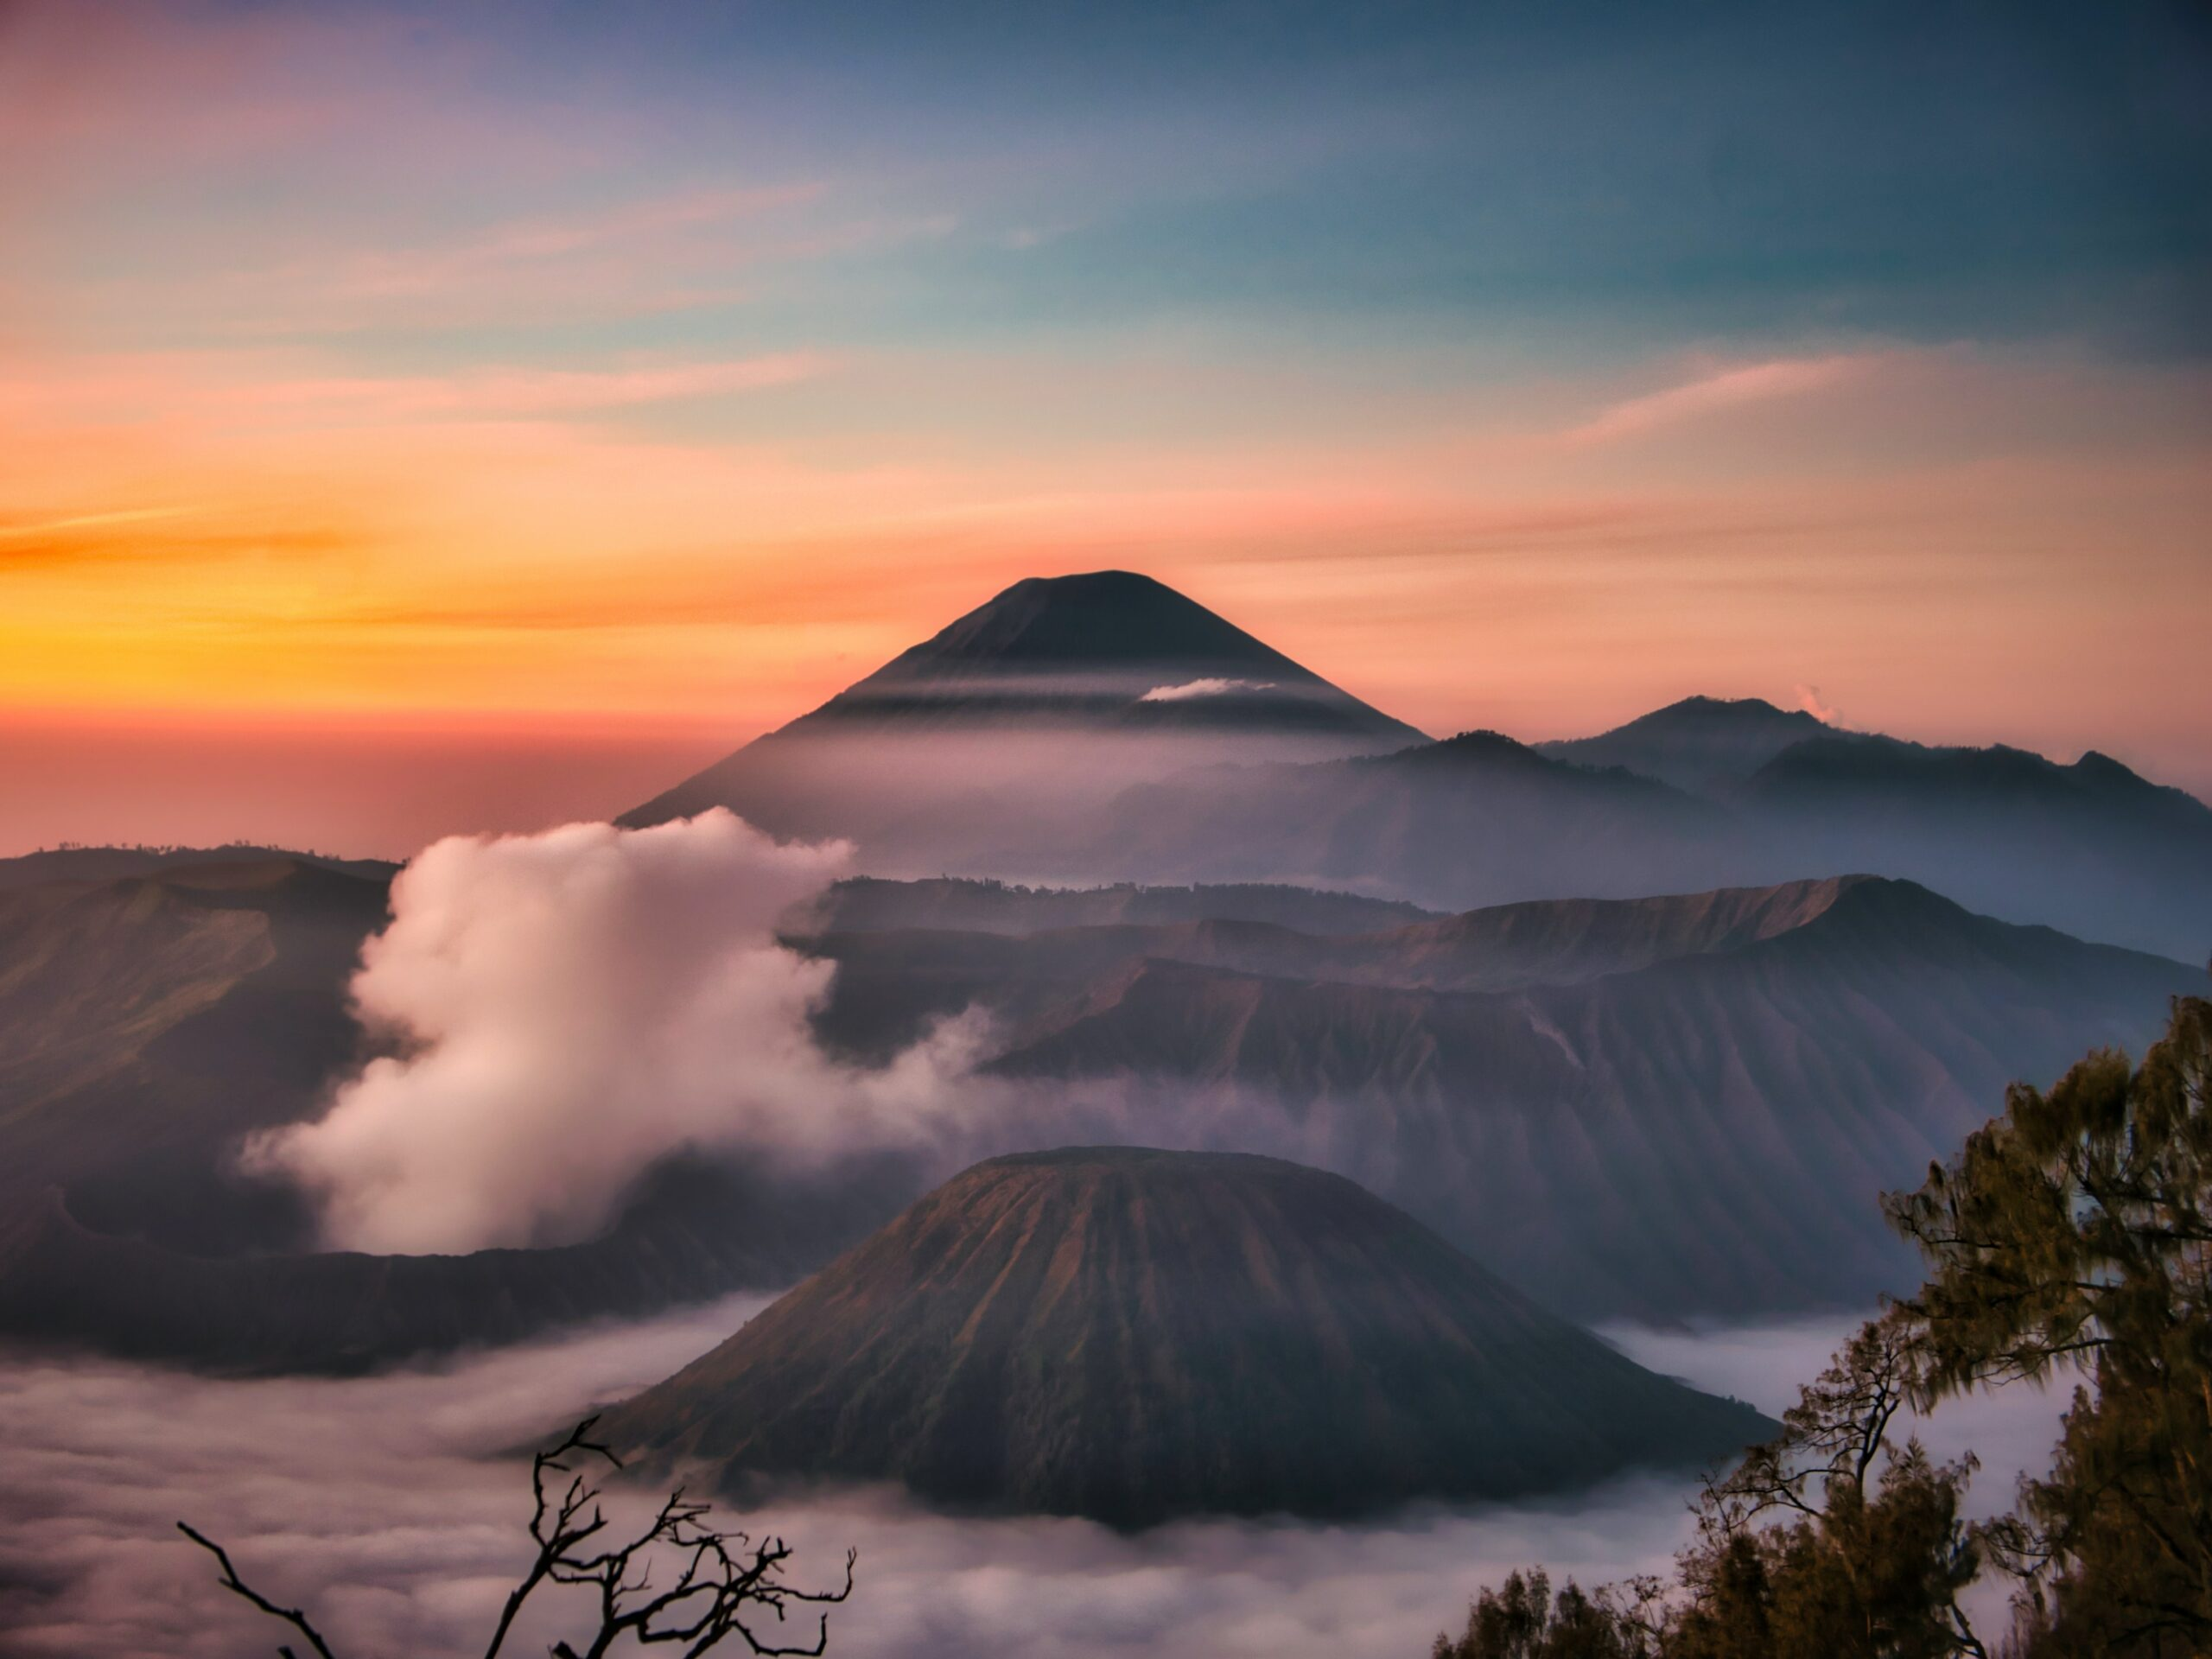 The best Indonesia itinerary must include Mount Bromo.